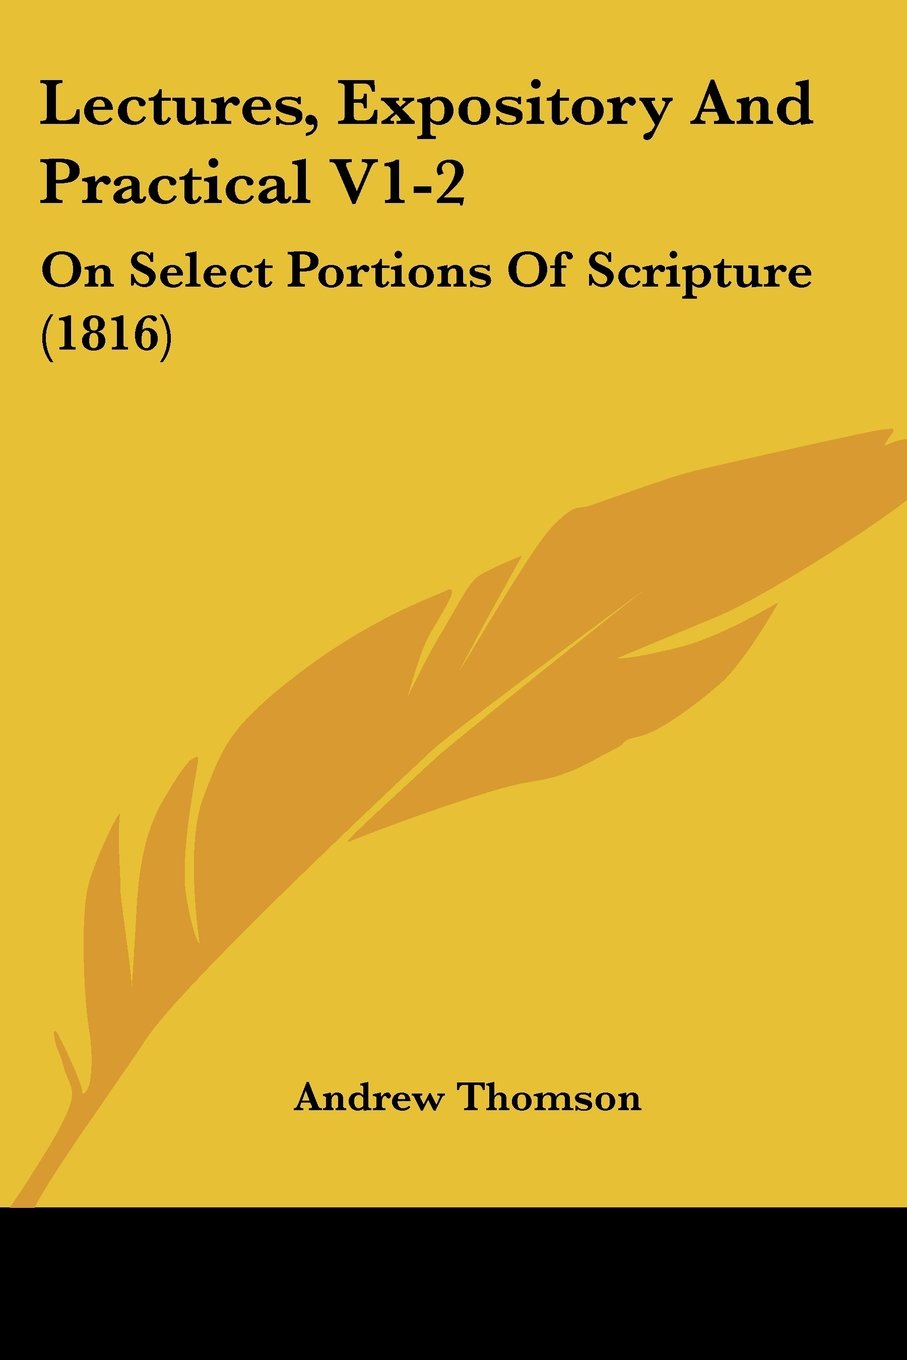 Lectures, Expository And Practical V1-2: On Select Portions Of Scripture (1816) pdf epub